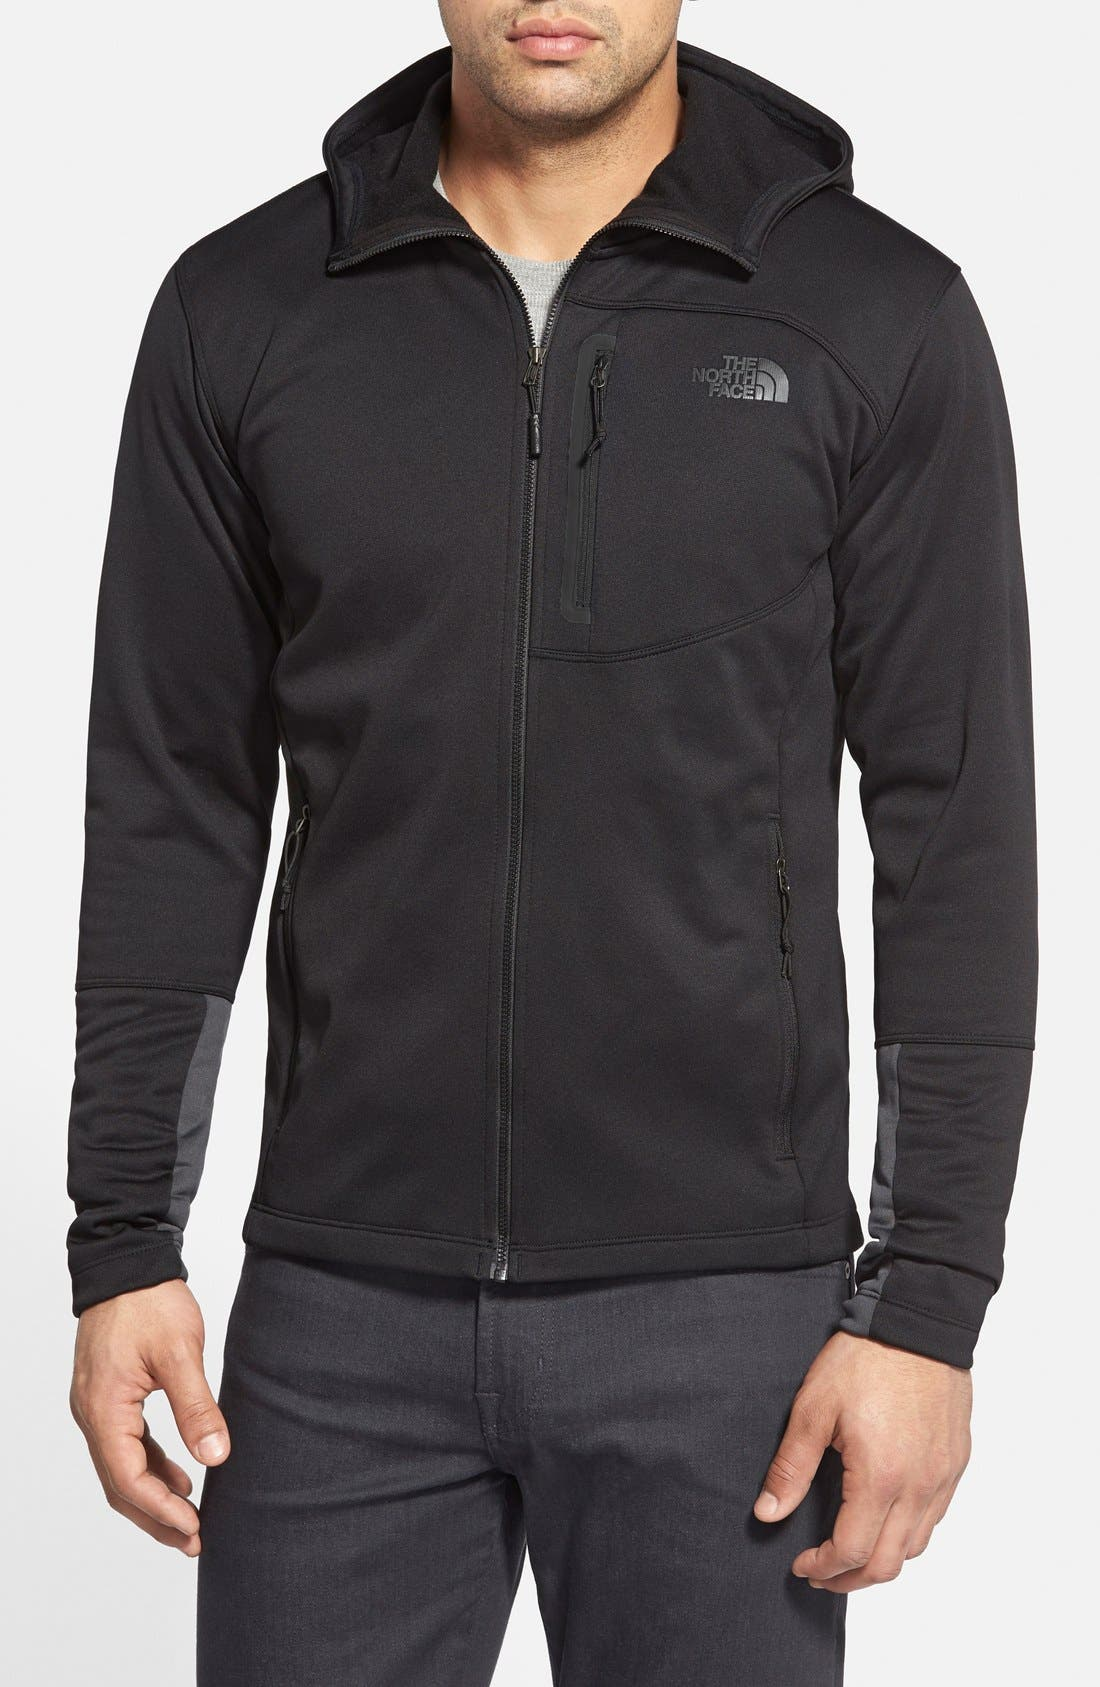 Main Image - The North Face 'Canyonlands' Full Zip Hoodie